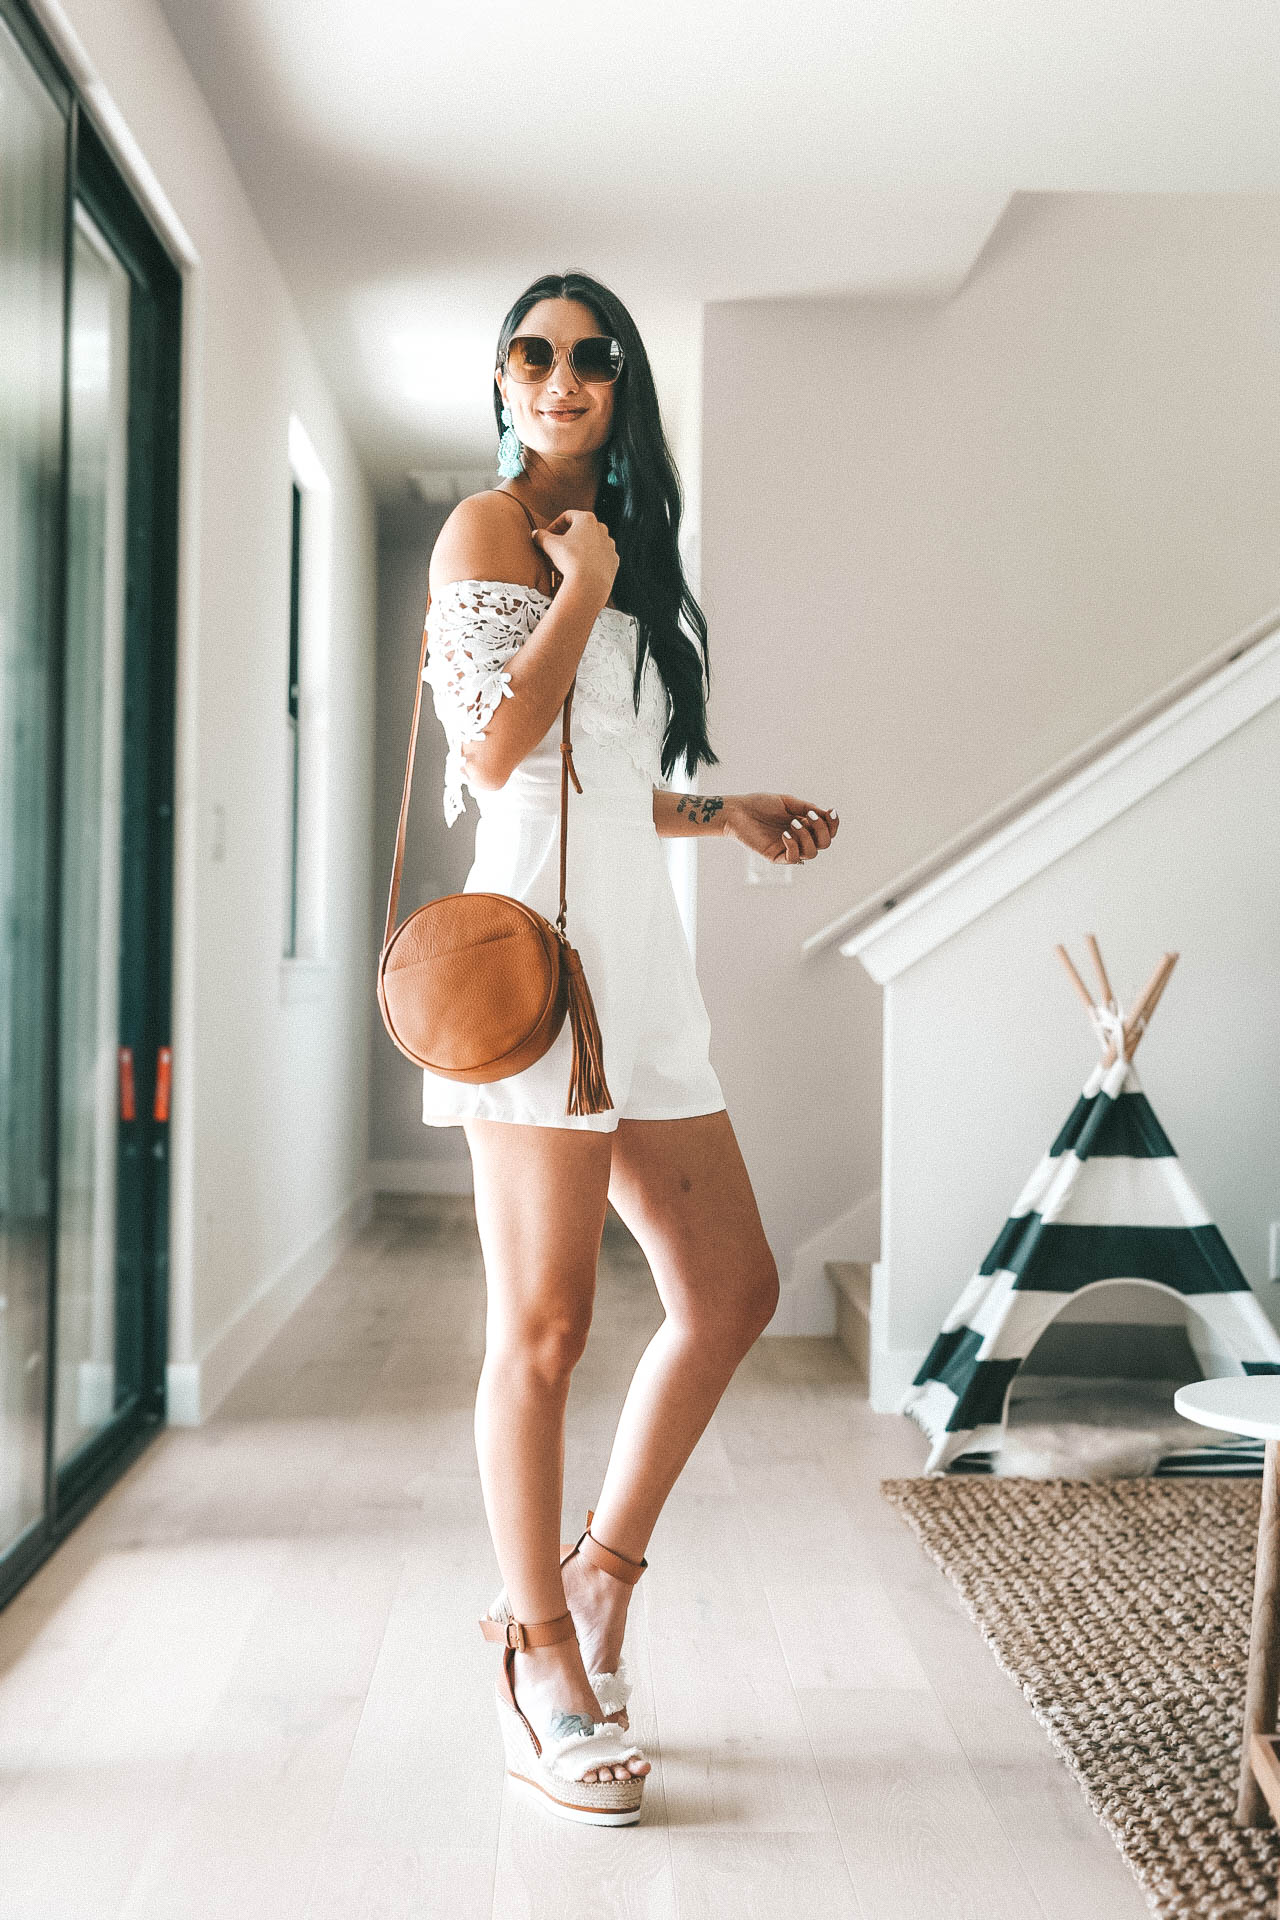 Are Summer Rompers still in style | Women's Fashion | how to style a romper | white romper | summer fashion || Dressed to Kill #style #fashion #outfits #summer #romper #whiteromper #summeroutfit #womensoutfit #dtkaustin